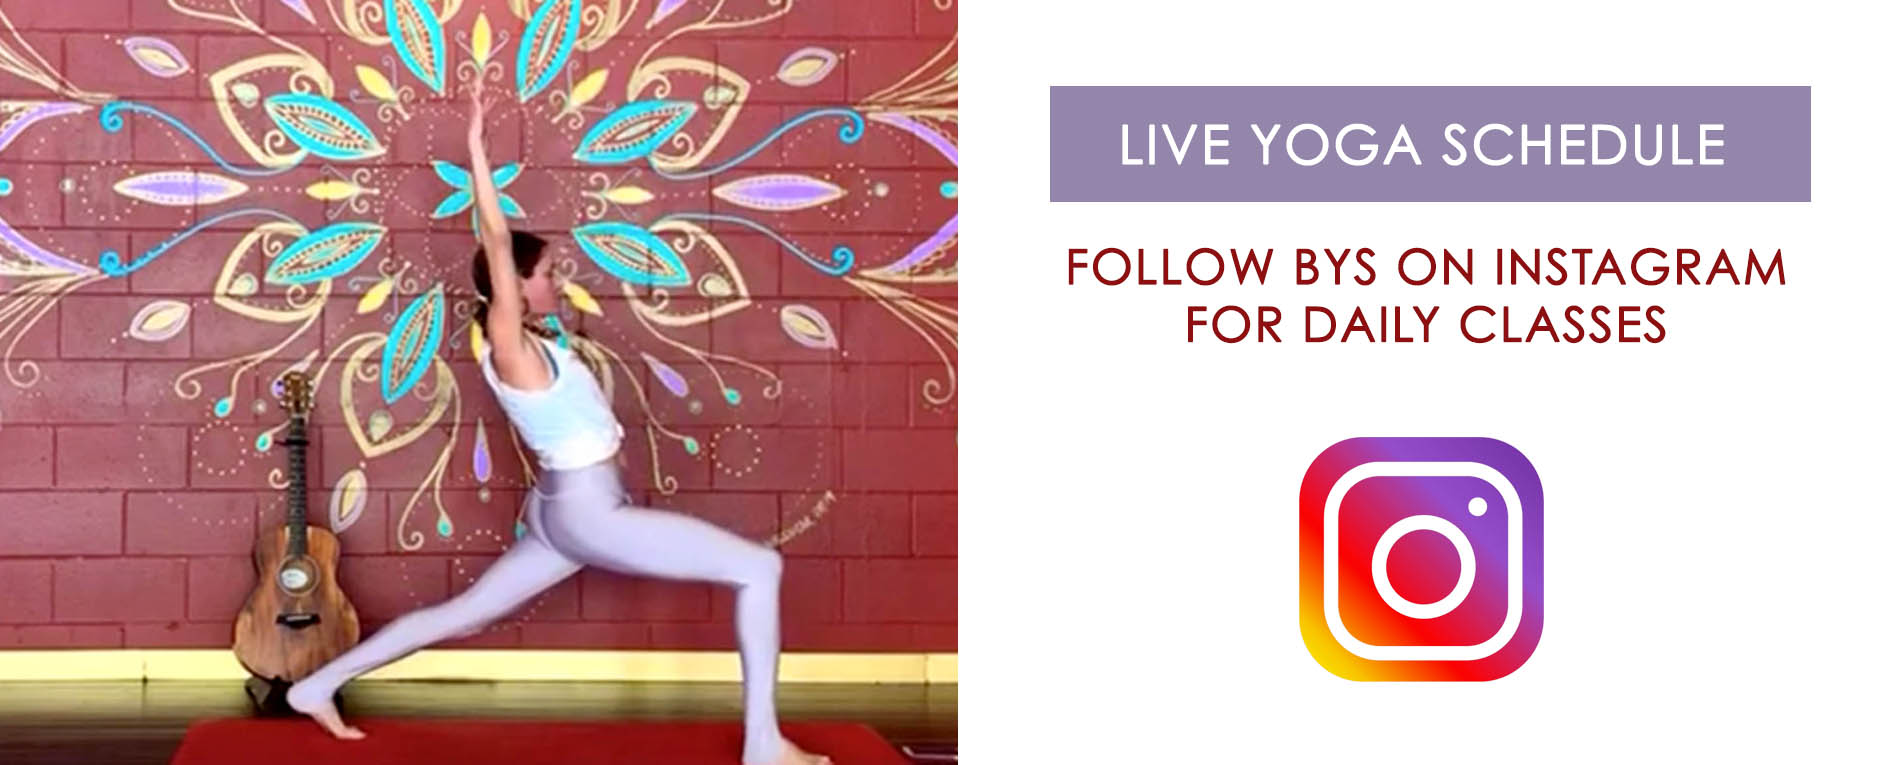 Instagram Live Streaming Daily Yoga Classes